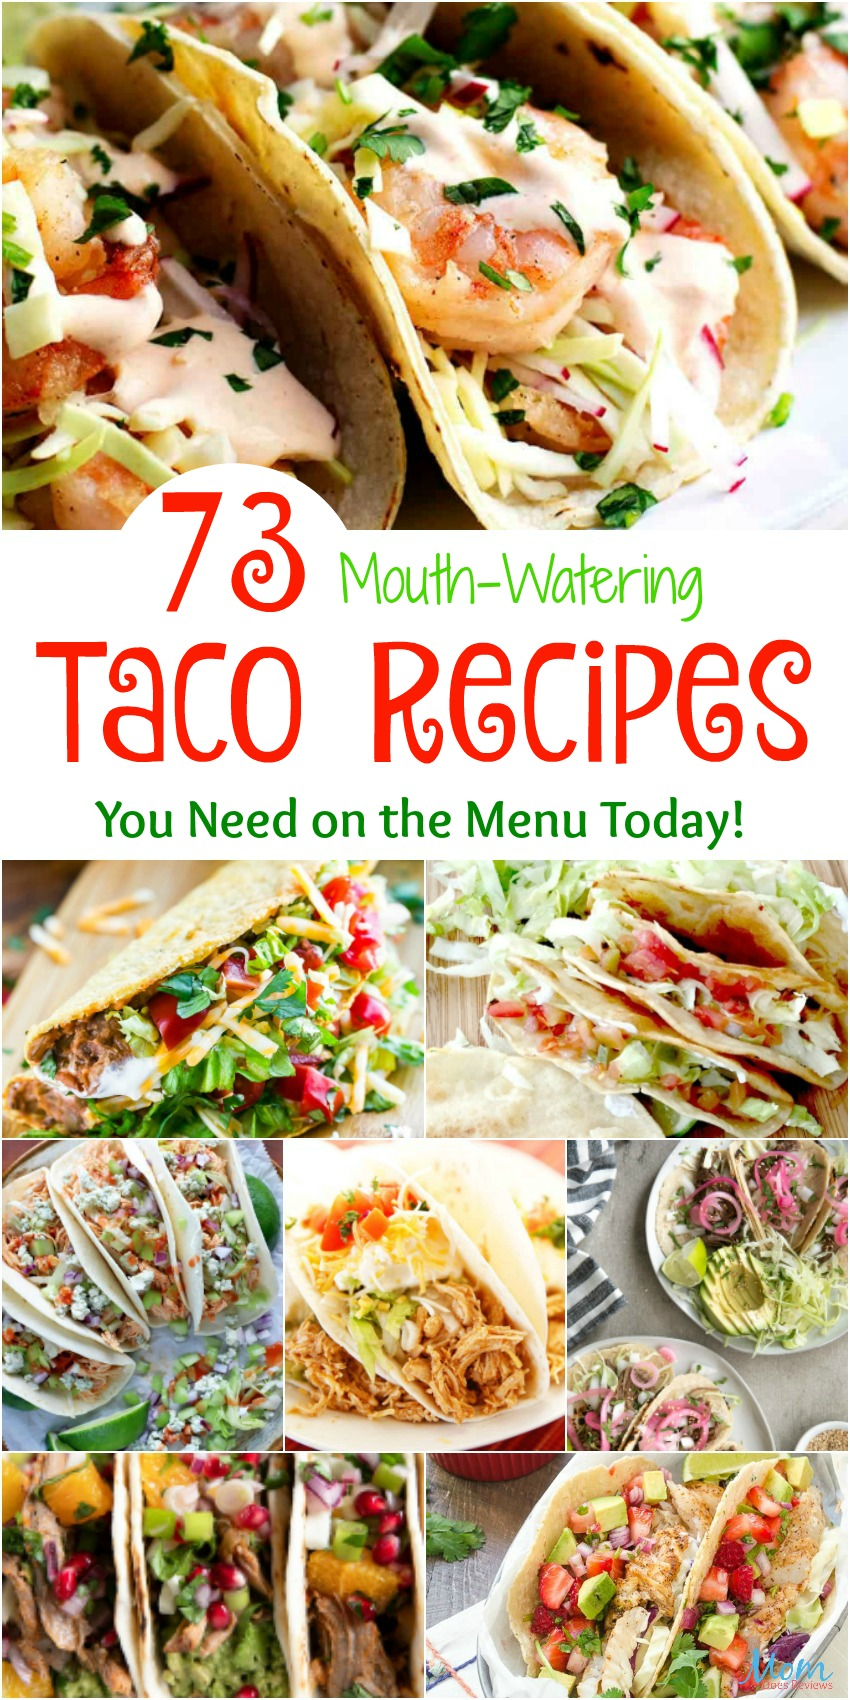 73 Mouth-Watering Taco Recipes You Need on the Menu Today #recipes #taco #tacotuesday #funfood #getinmybelly